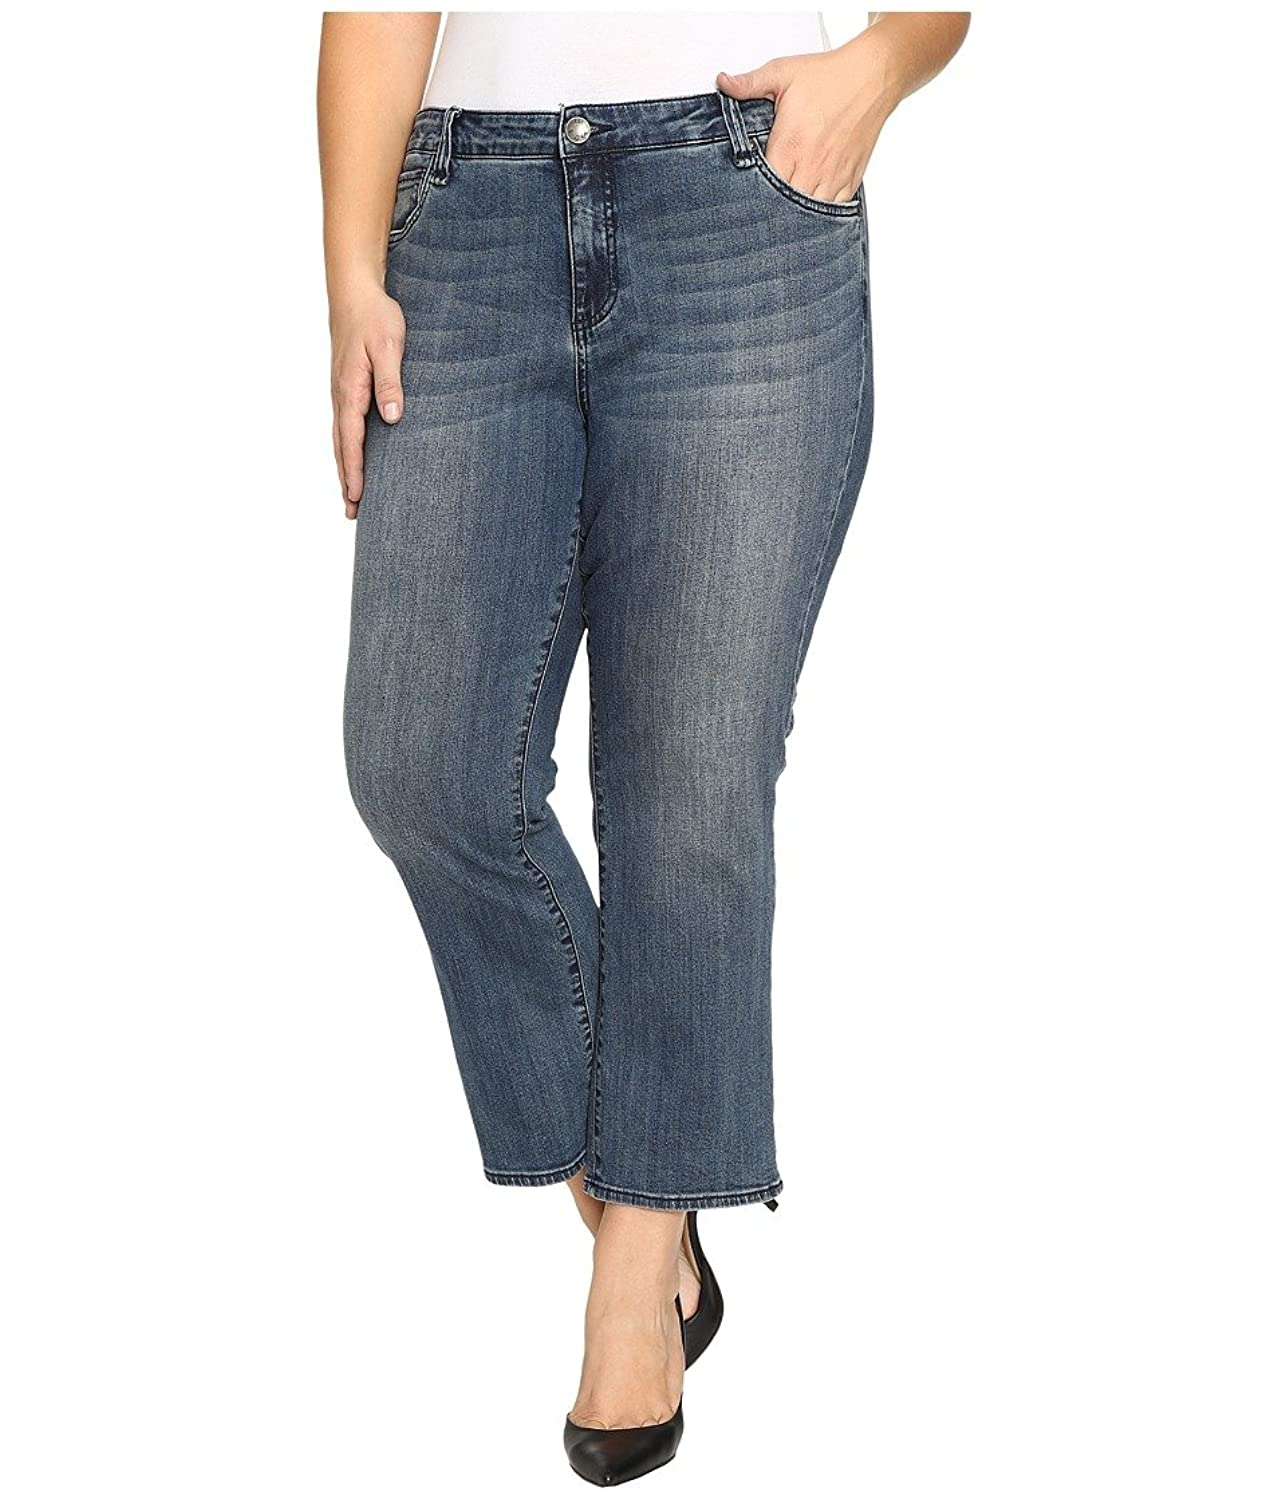 KUT from the Kloth Women's Plus Size Reese Crop Flare Jeans in